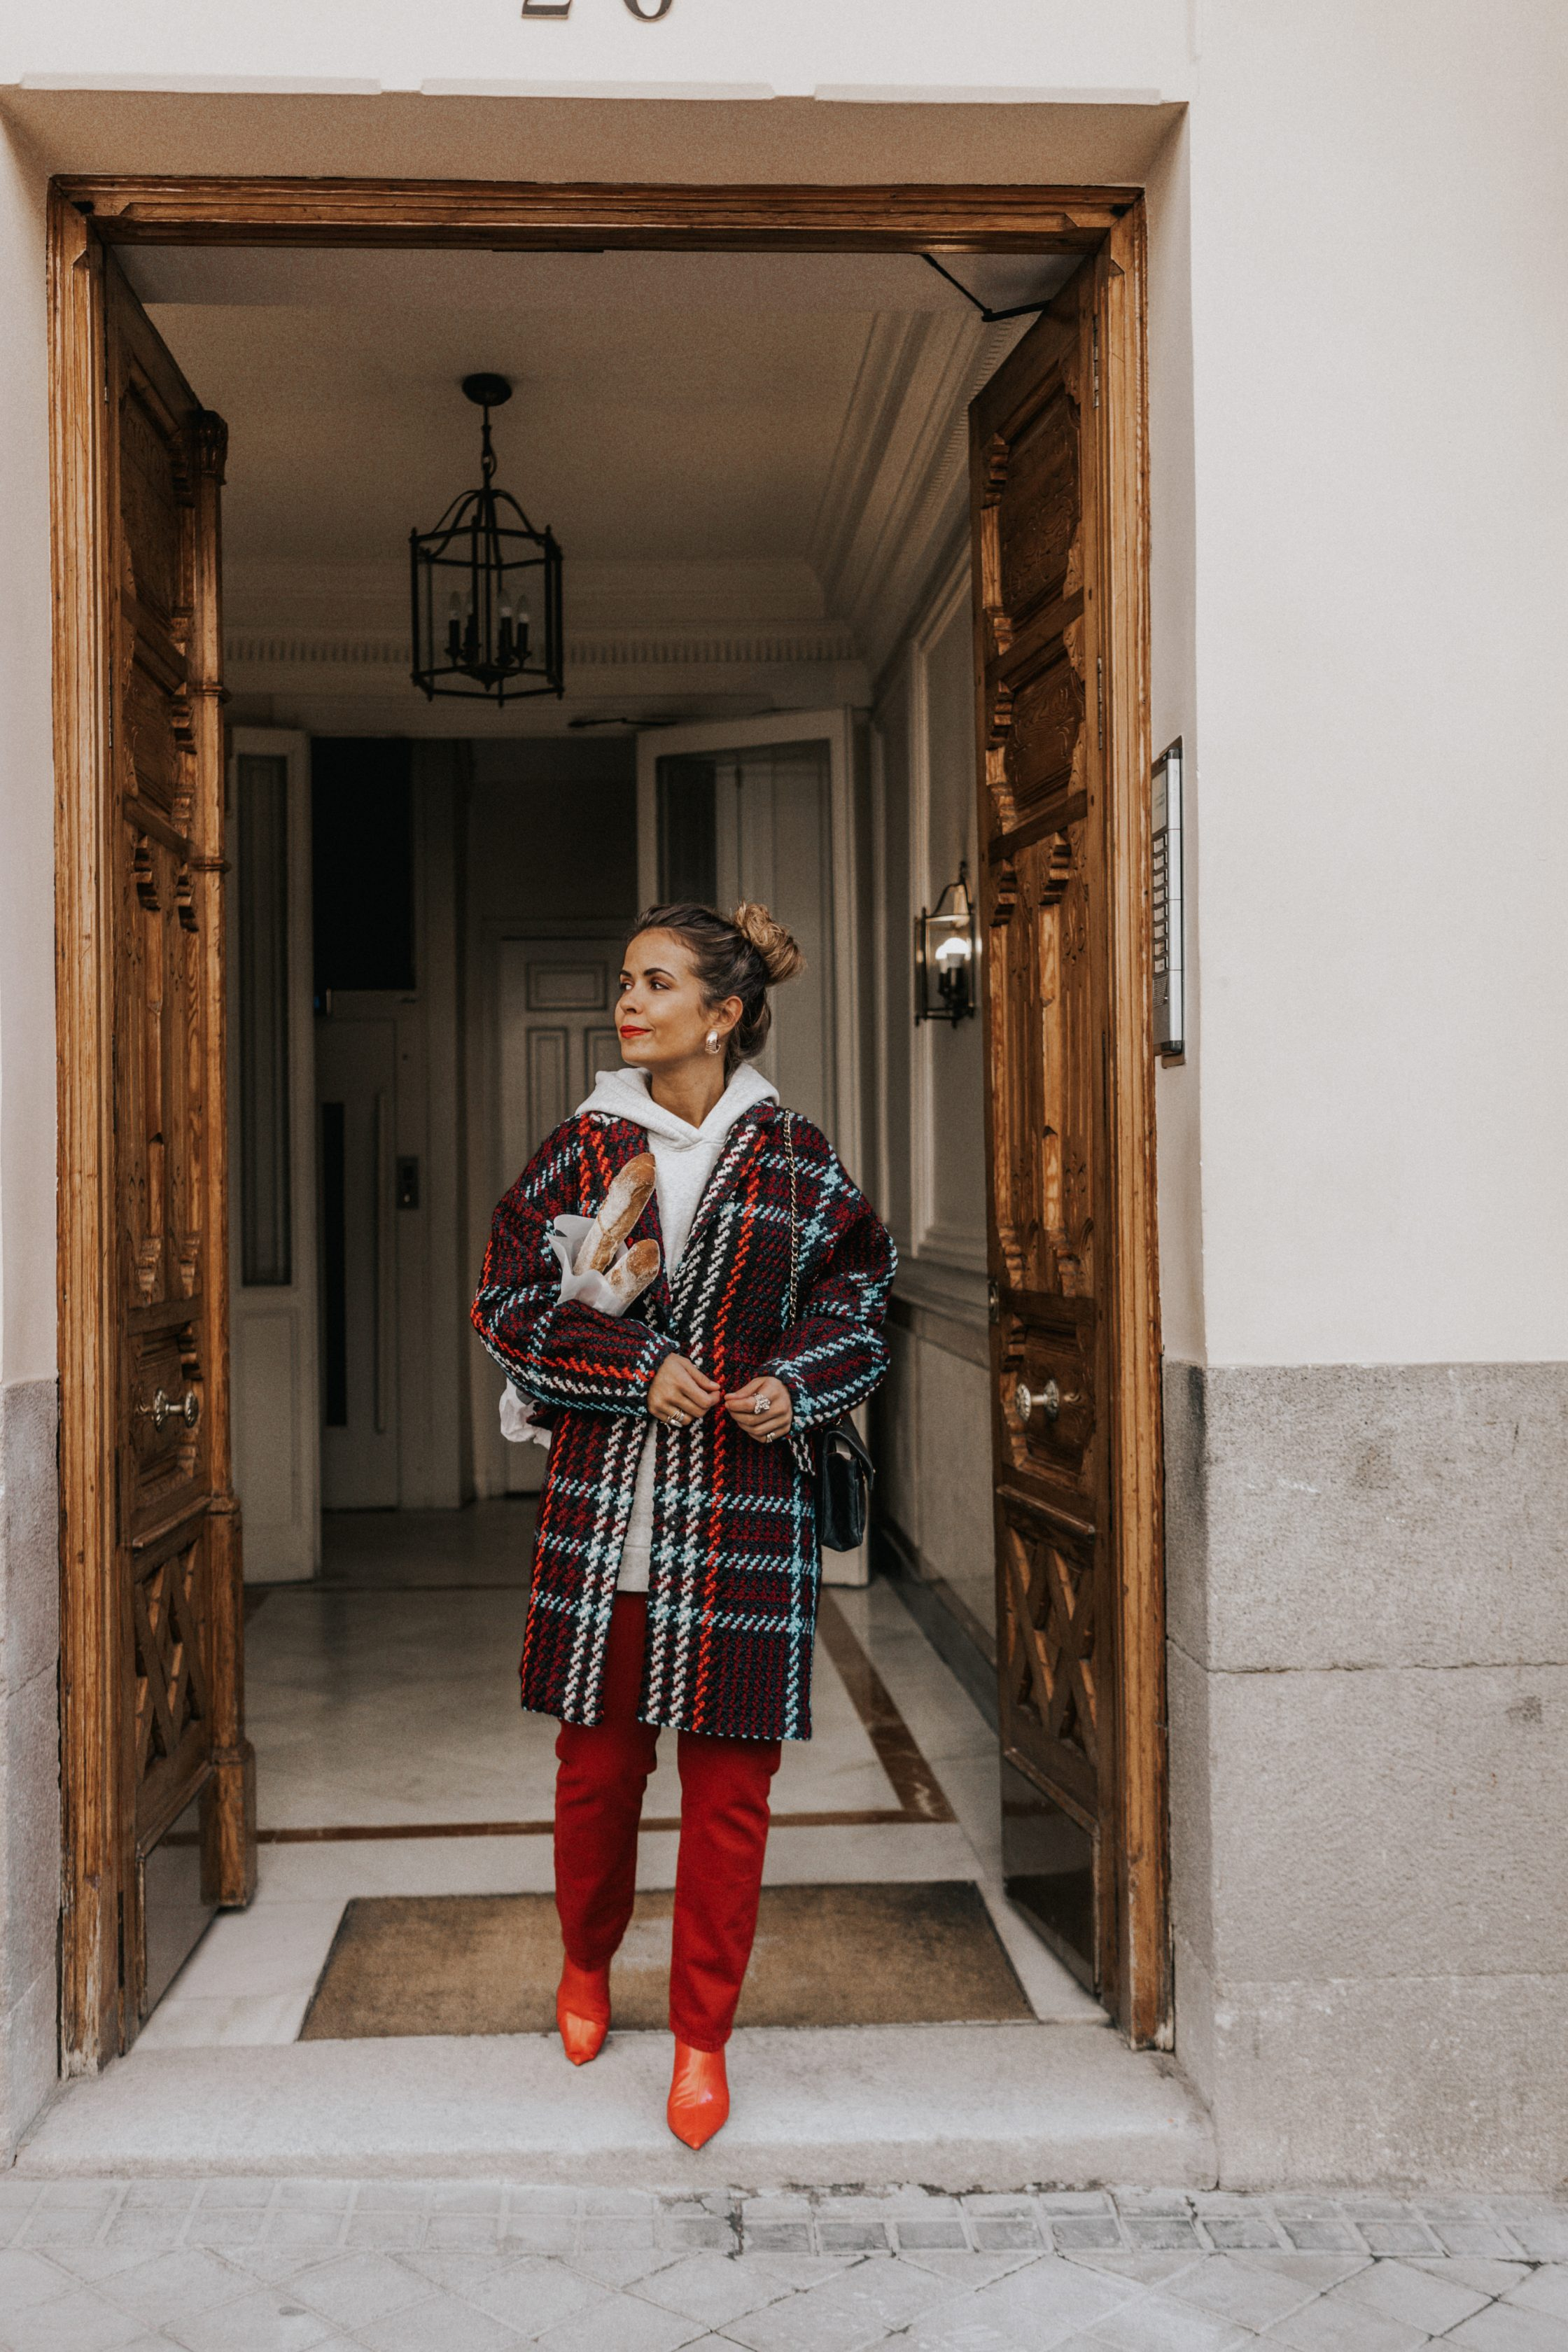 Sara of Collage Vintage wearing plaid coat and red trousers